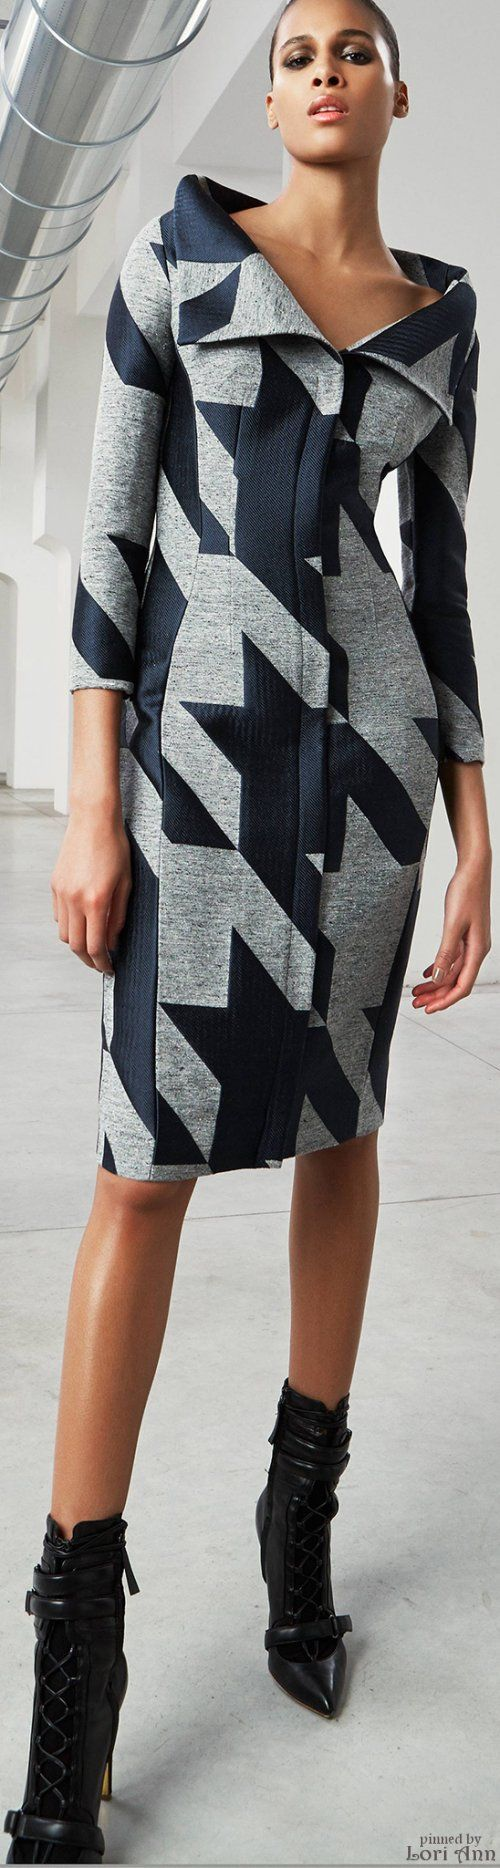 Antonio Berardi Pre-Fall 2015 A navy twill, patch worked/quilted with another fabric in the shape of a hounds tooth weave.